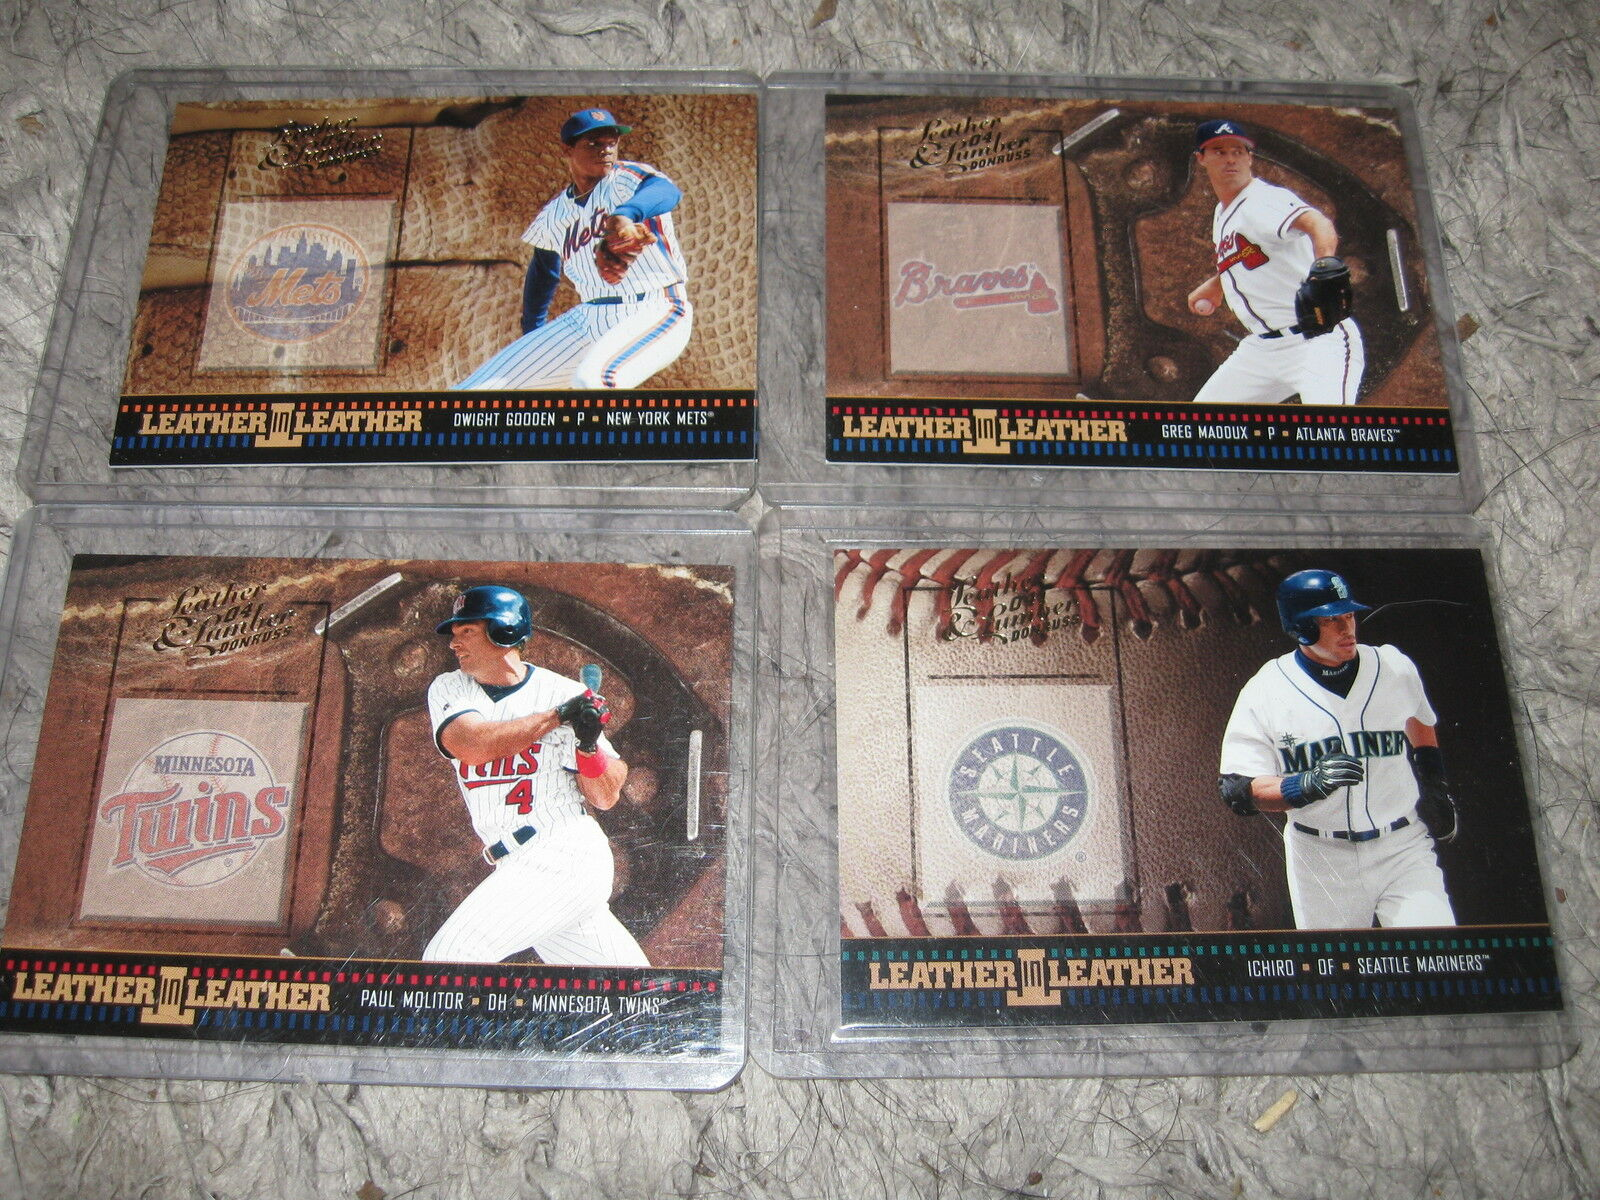 Cards-Cloths-And Collectibles